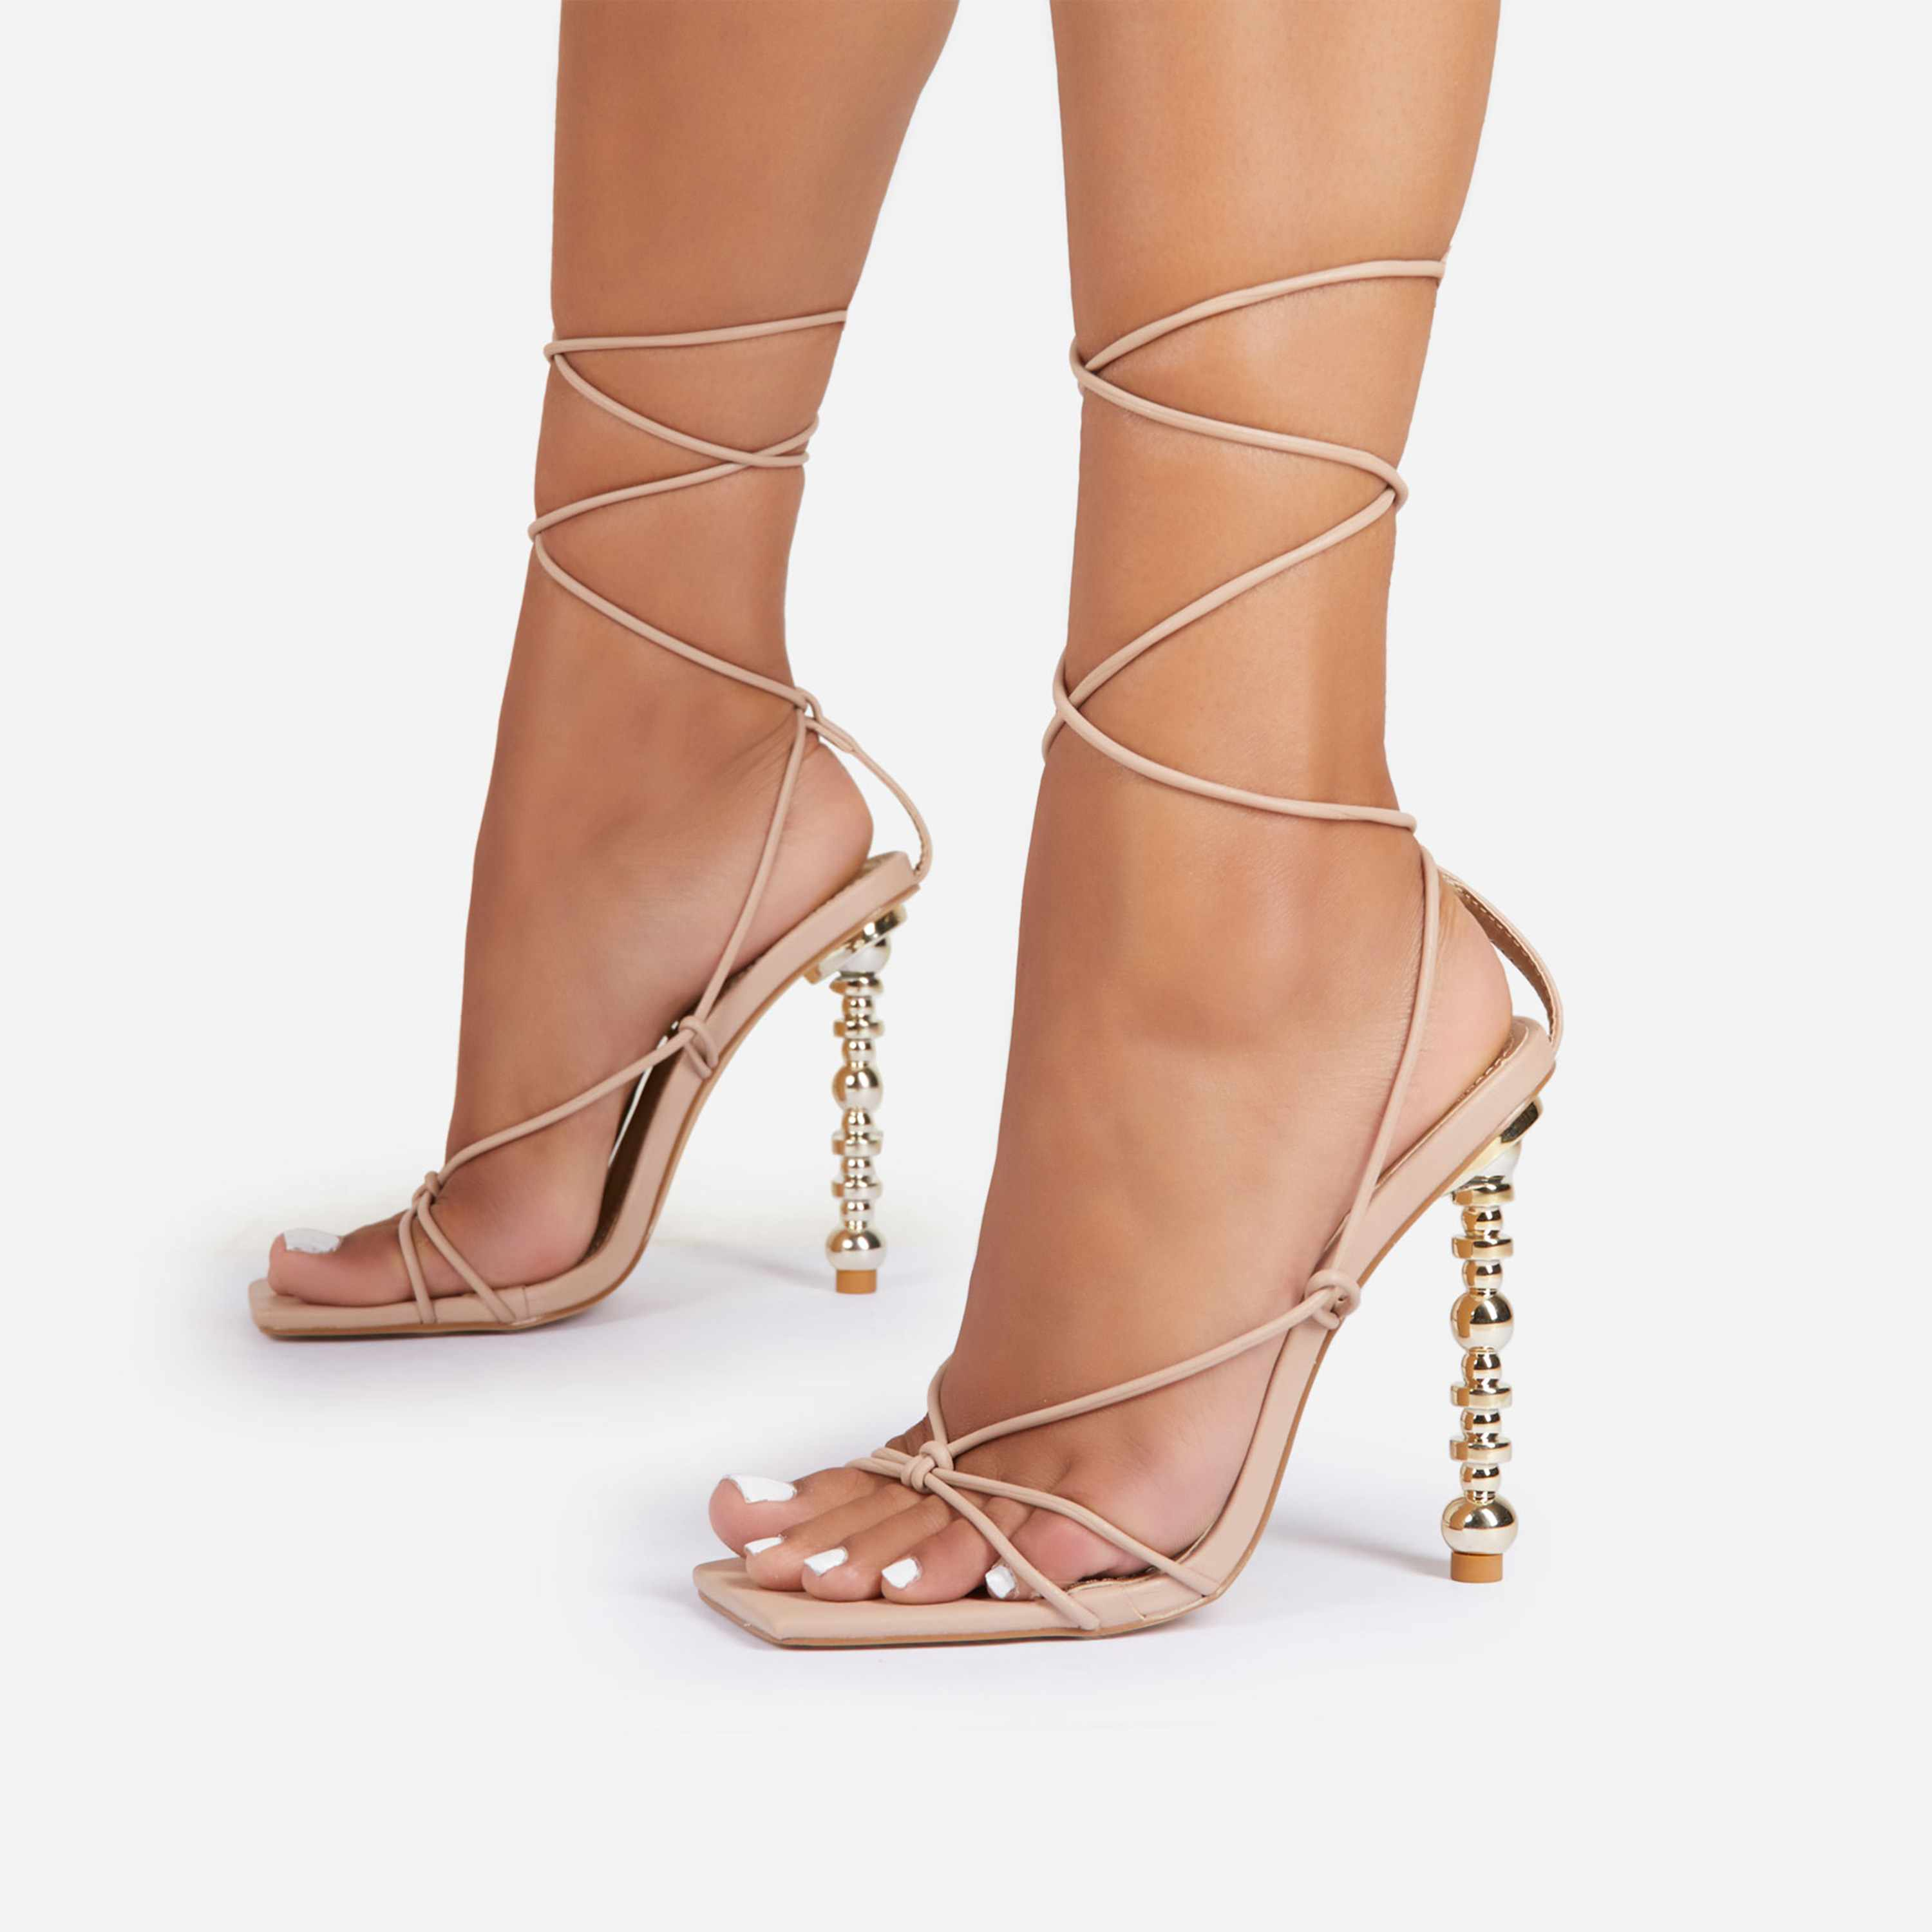 Trophy-Wife Lace Up Square Toe Sculptured Heel In Nude Faux Leather